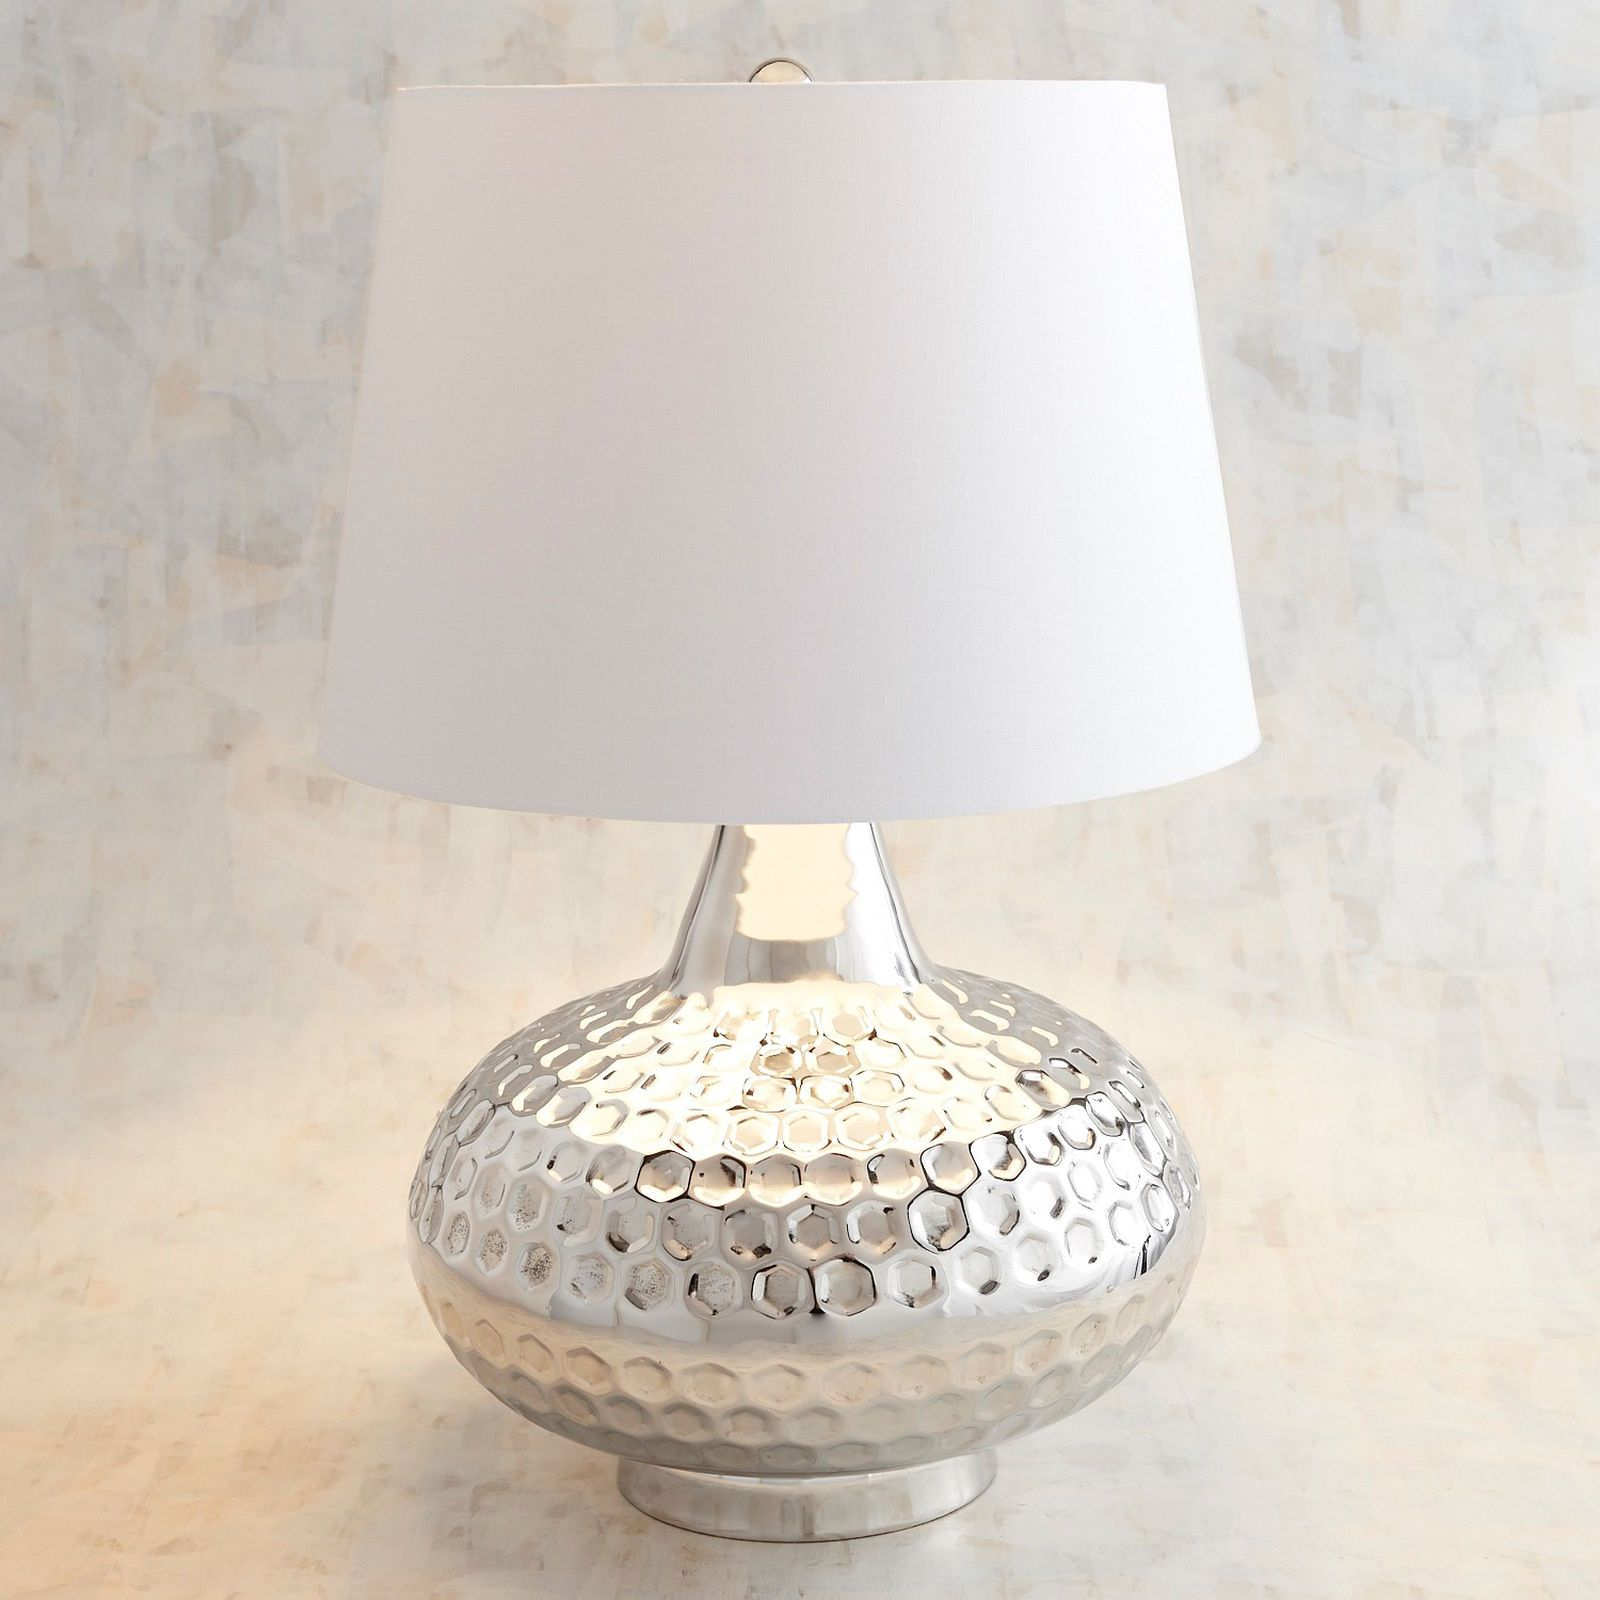 Genie Hammered Metal Table Lamp Pier 1 Imports Metal Table Lamps Table Lamp Lamp